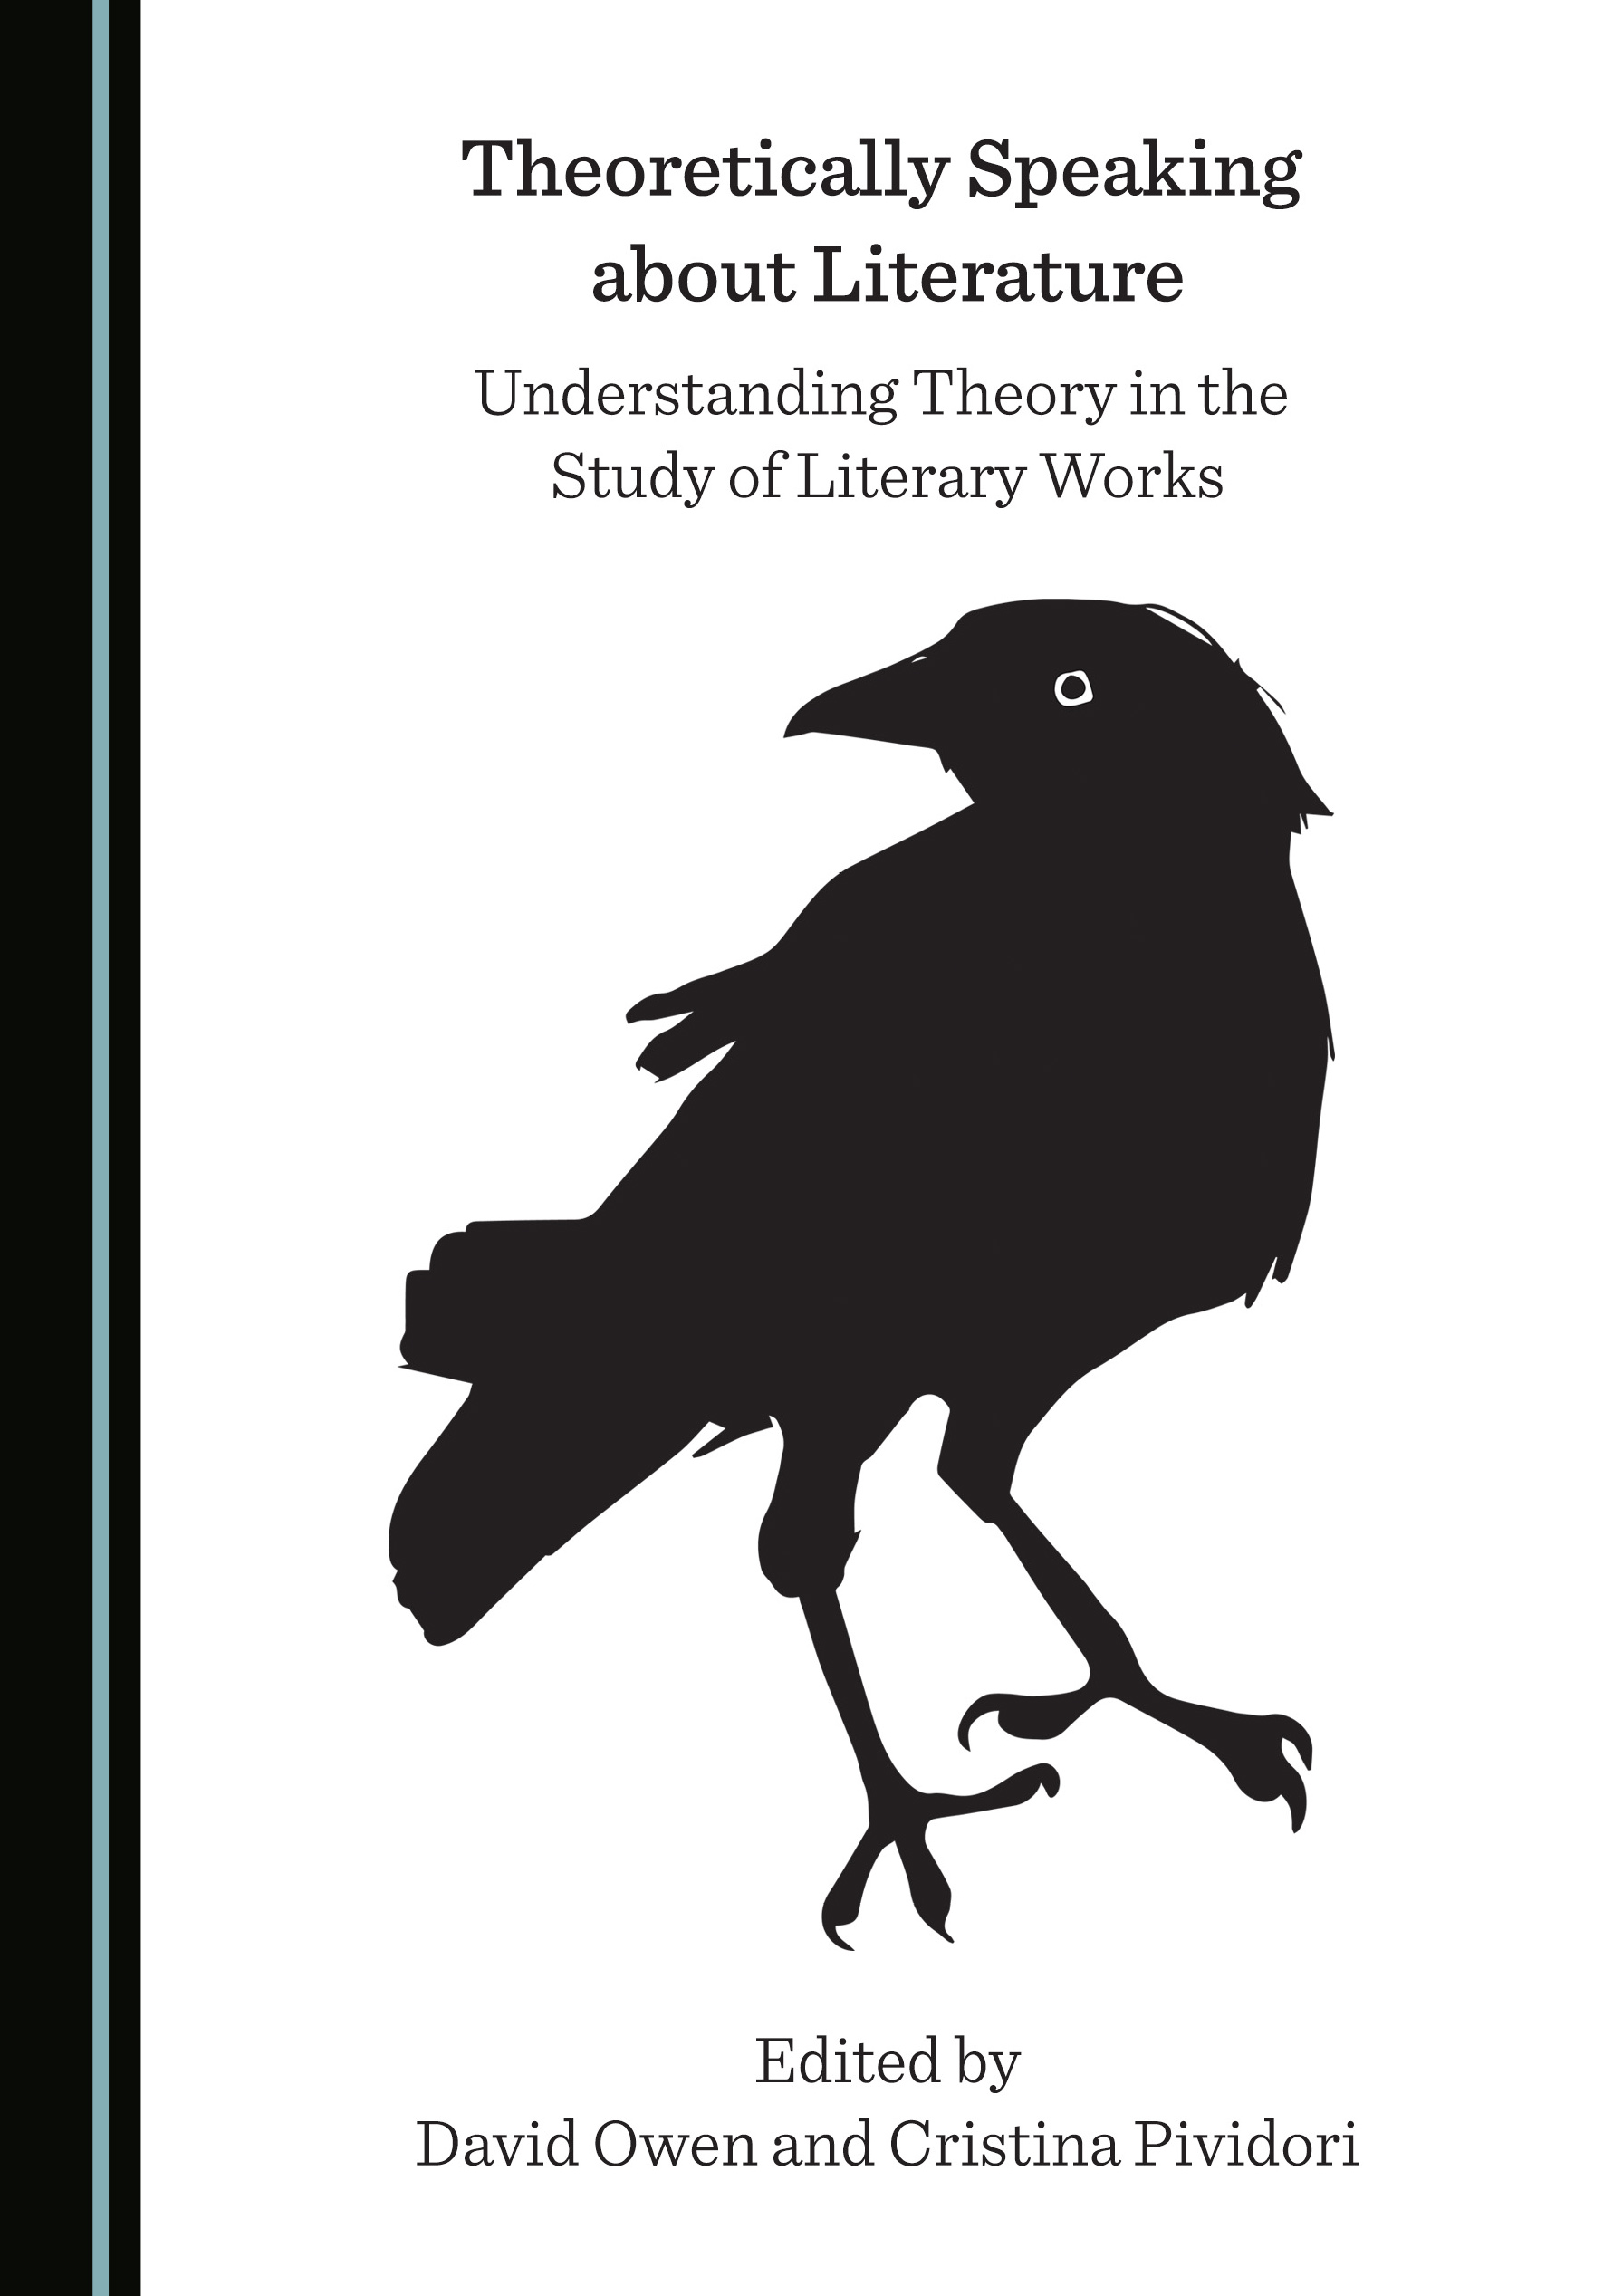 Theoretically Speaking about Literature: Understanding Theory in the Study of Literary Works